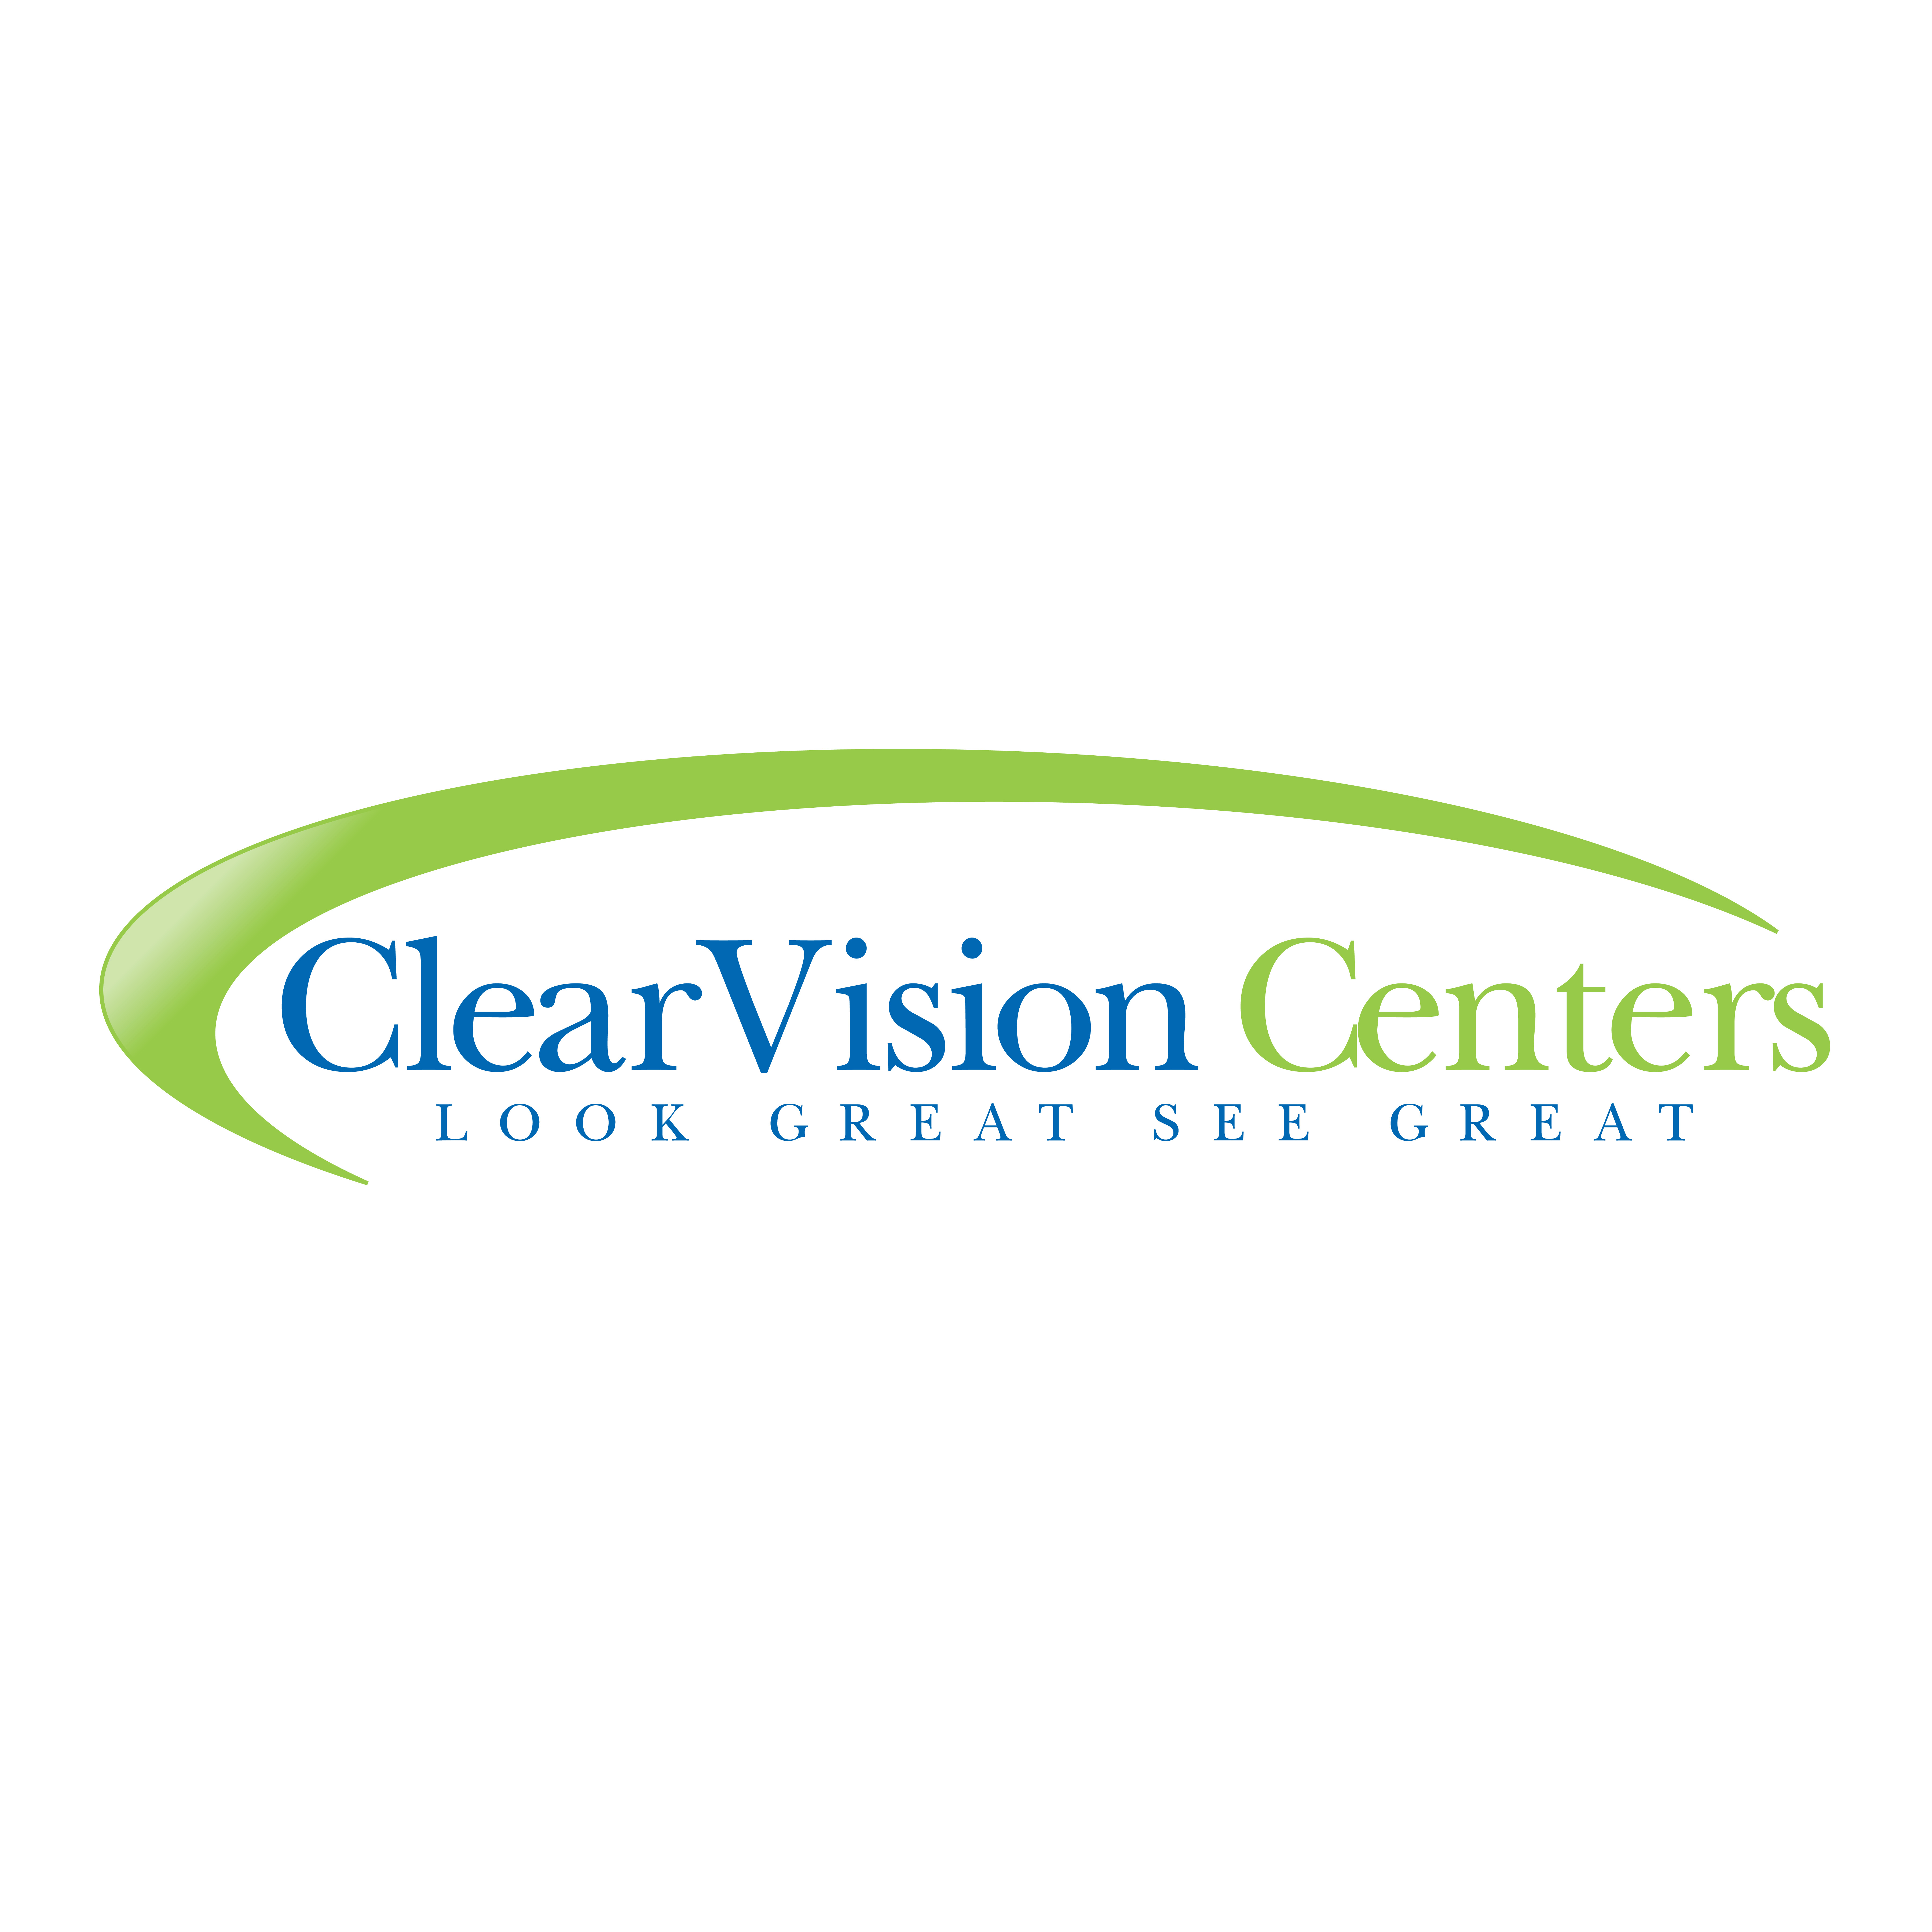 ClearVision Centers